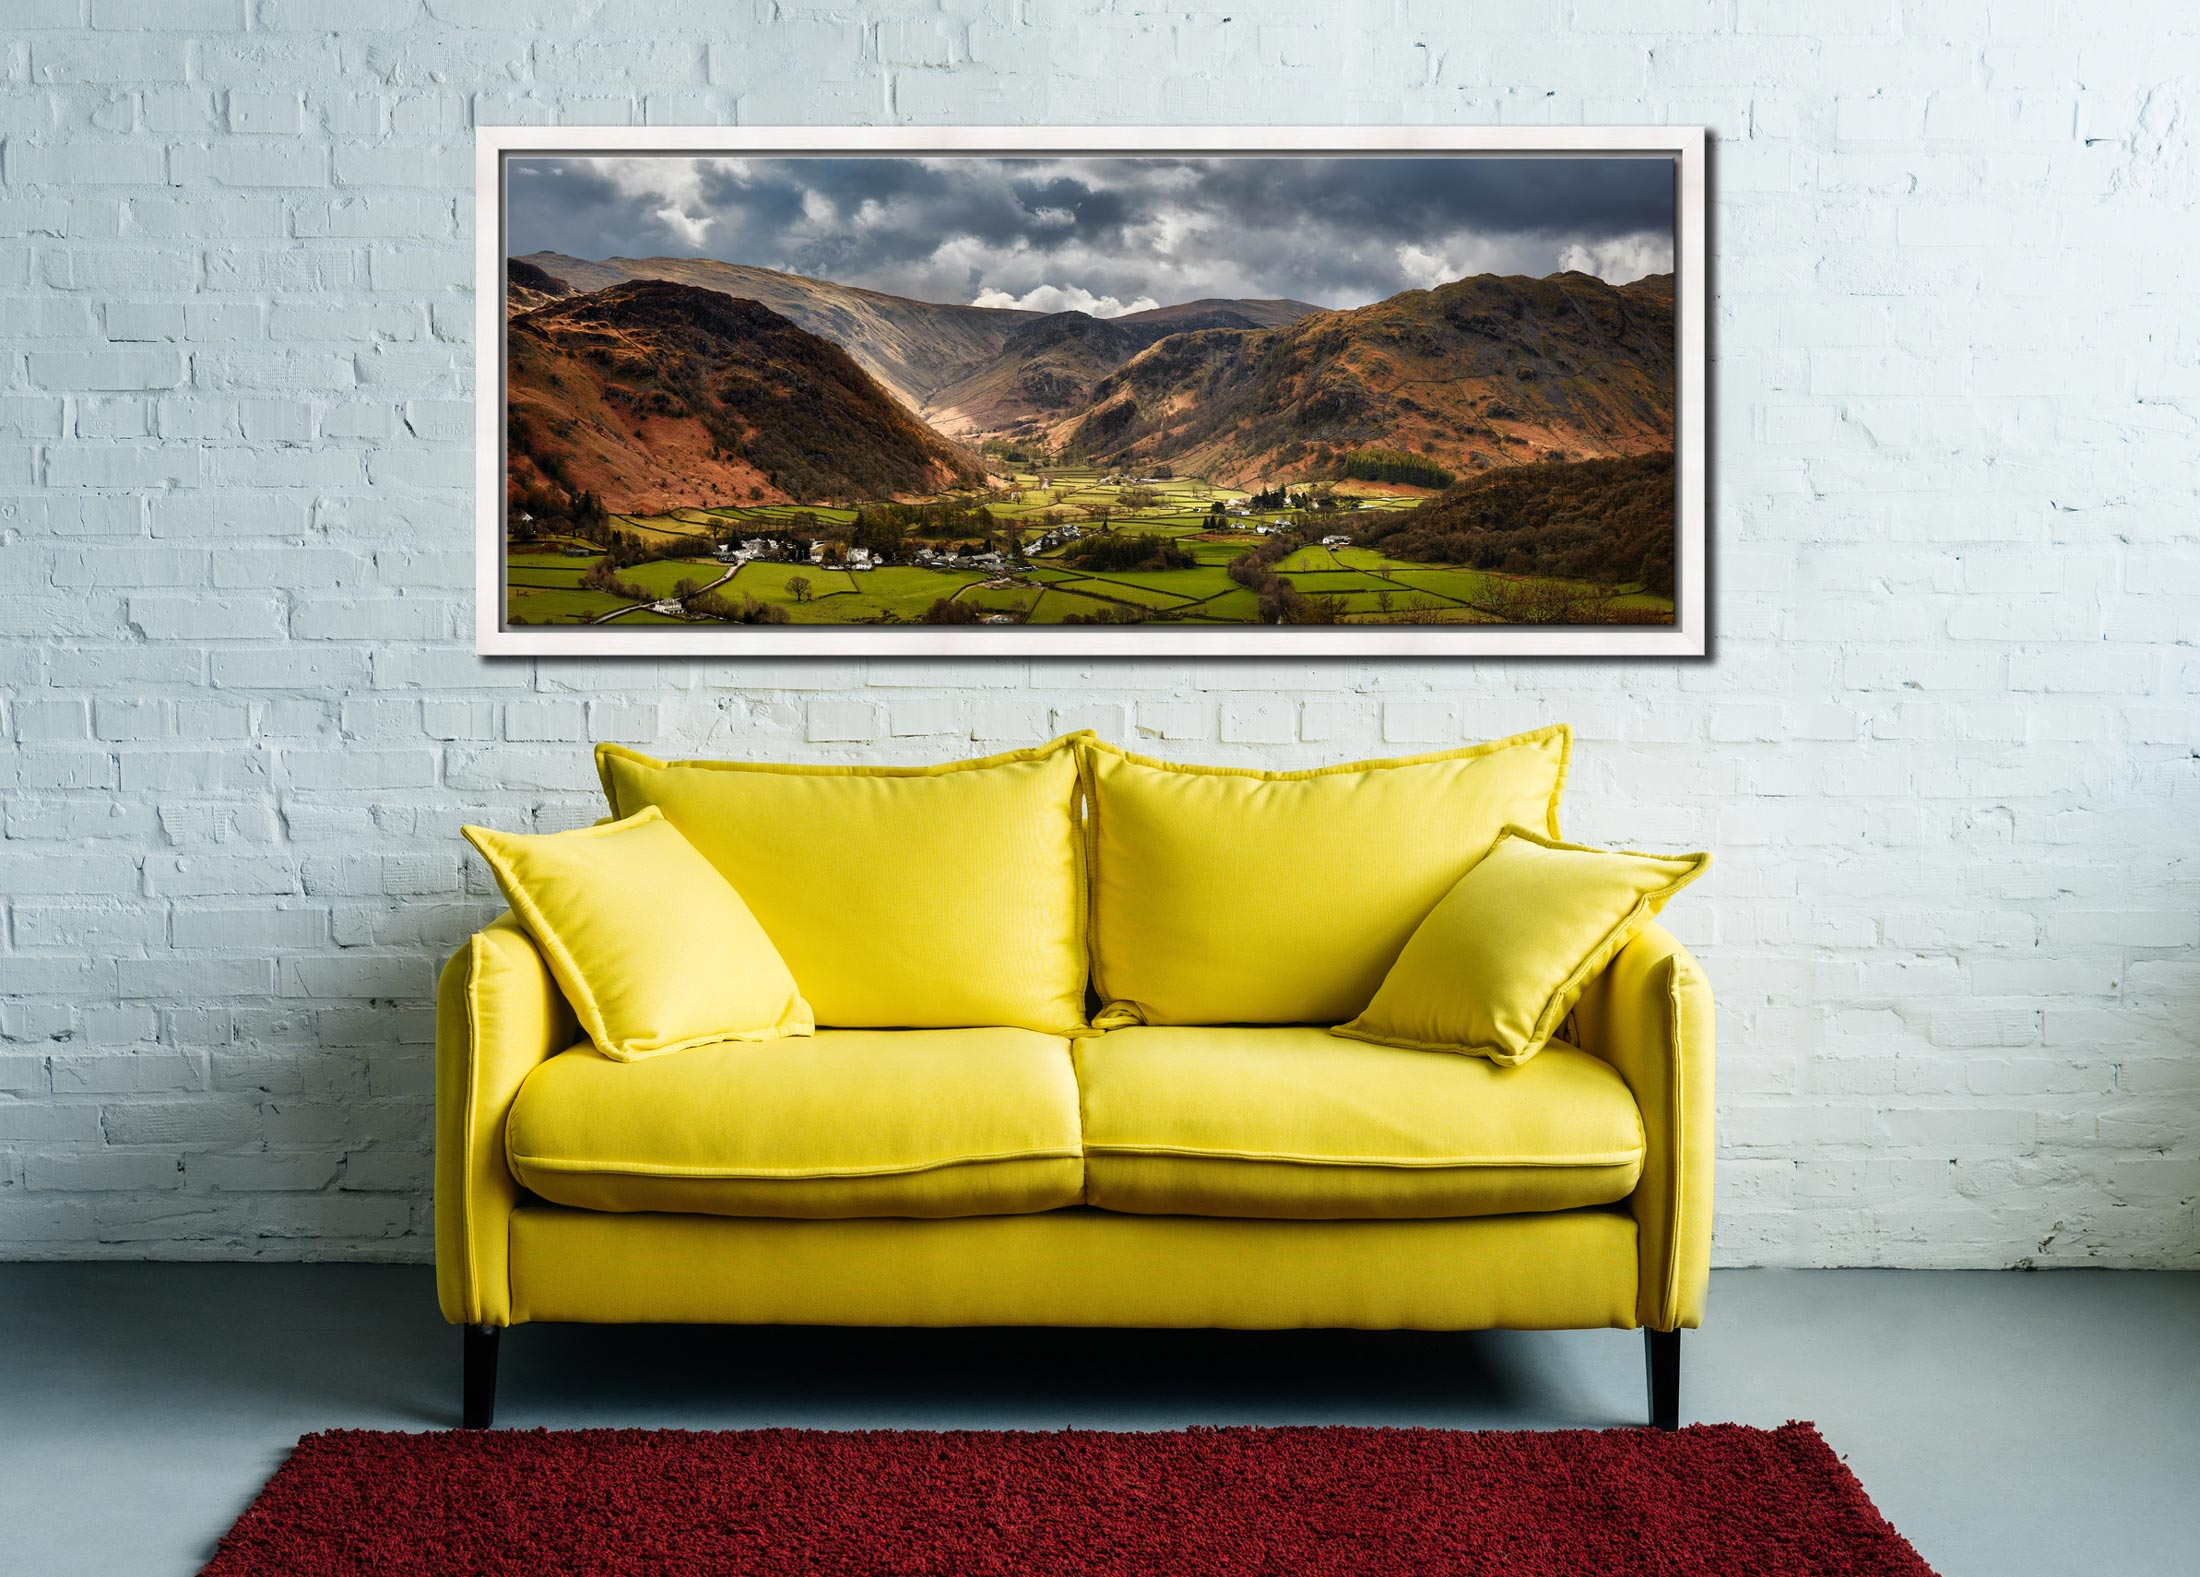 Sunny intervals over Rosthwaite in the beautiful Borrowdale Valley - White Maple floater frame with acrylic glazing on Wall